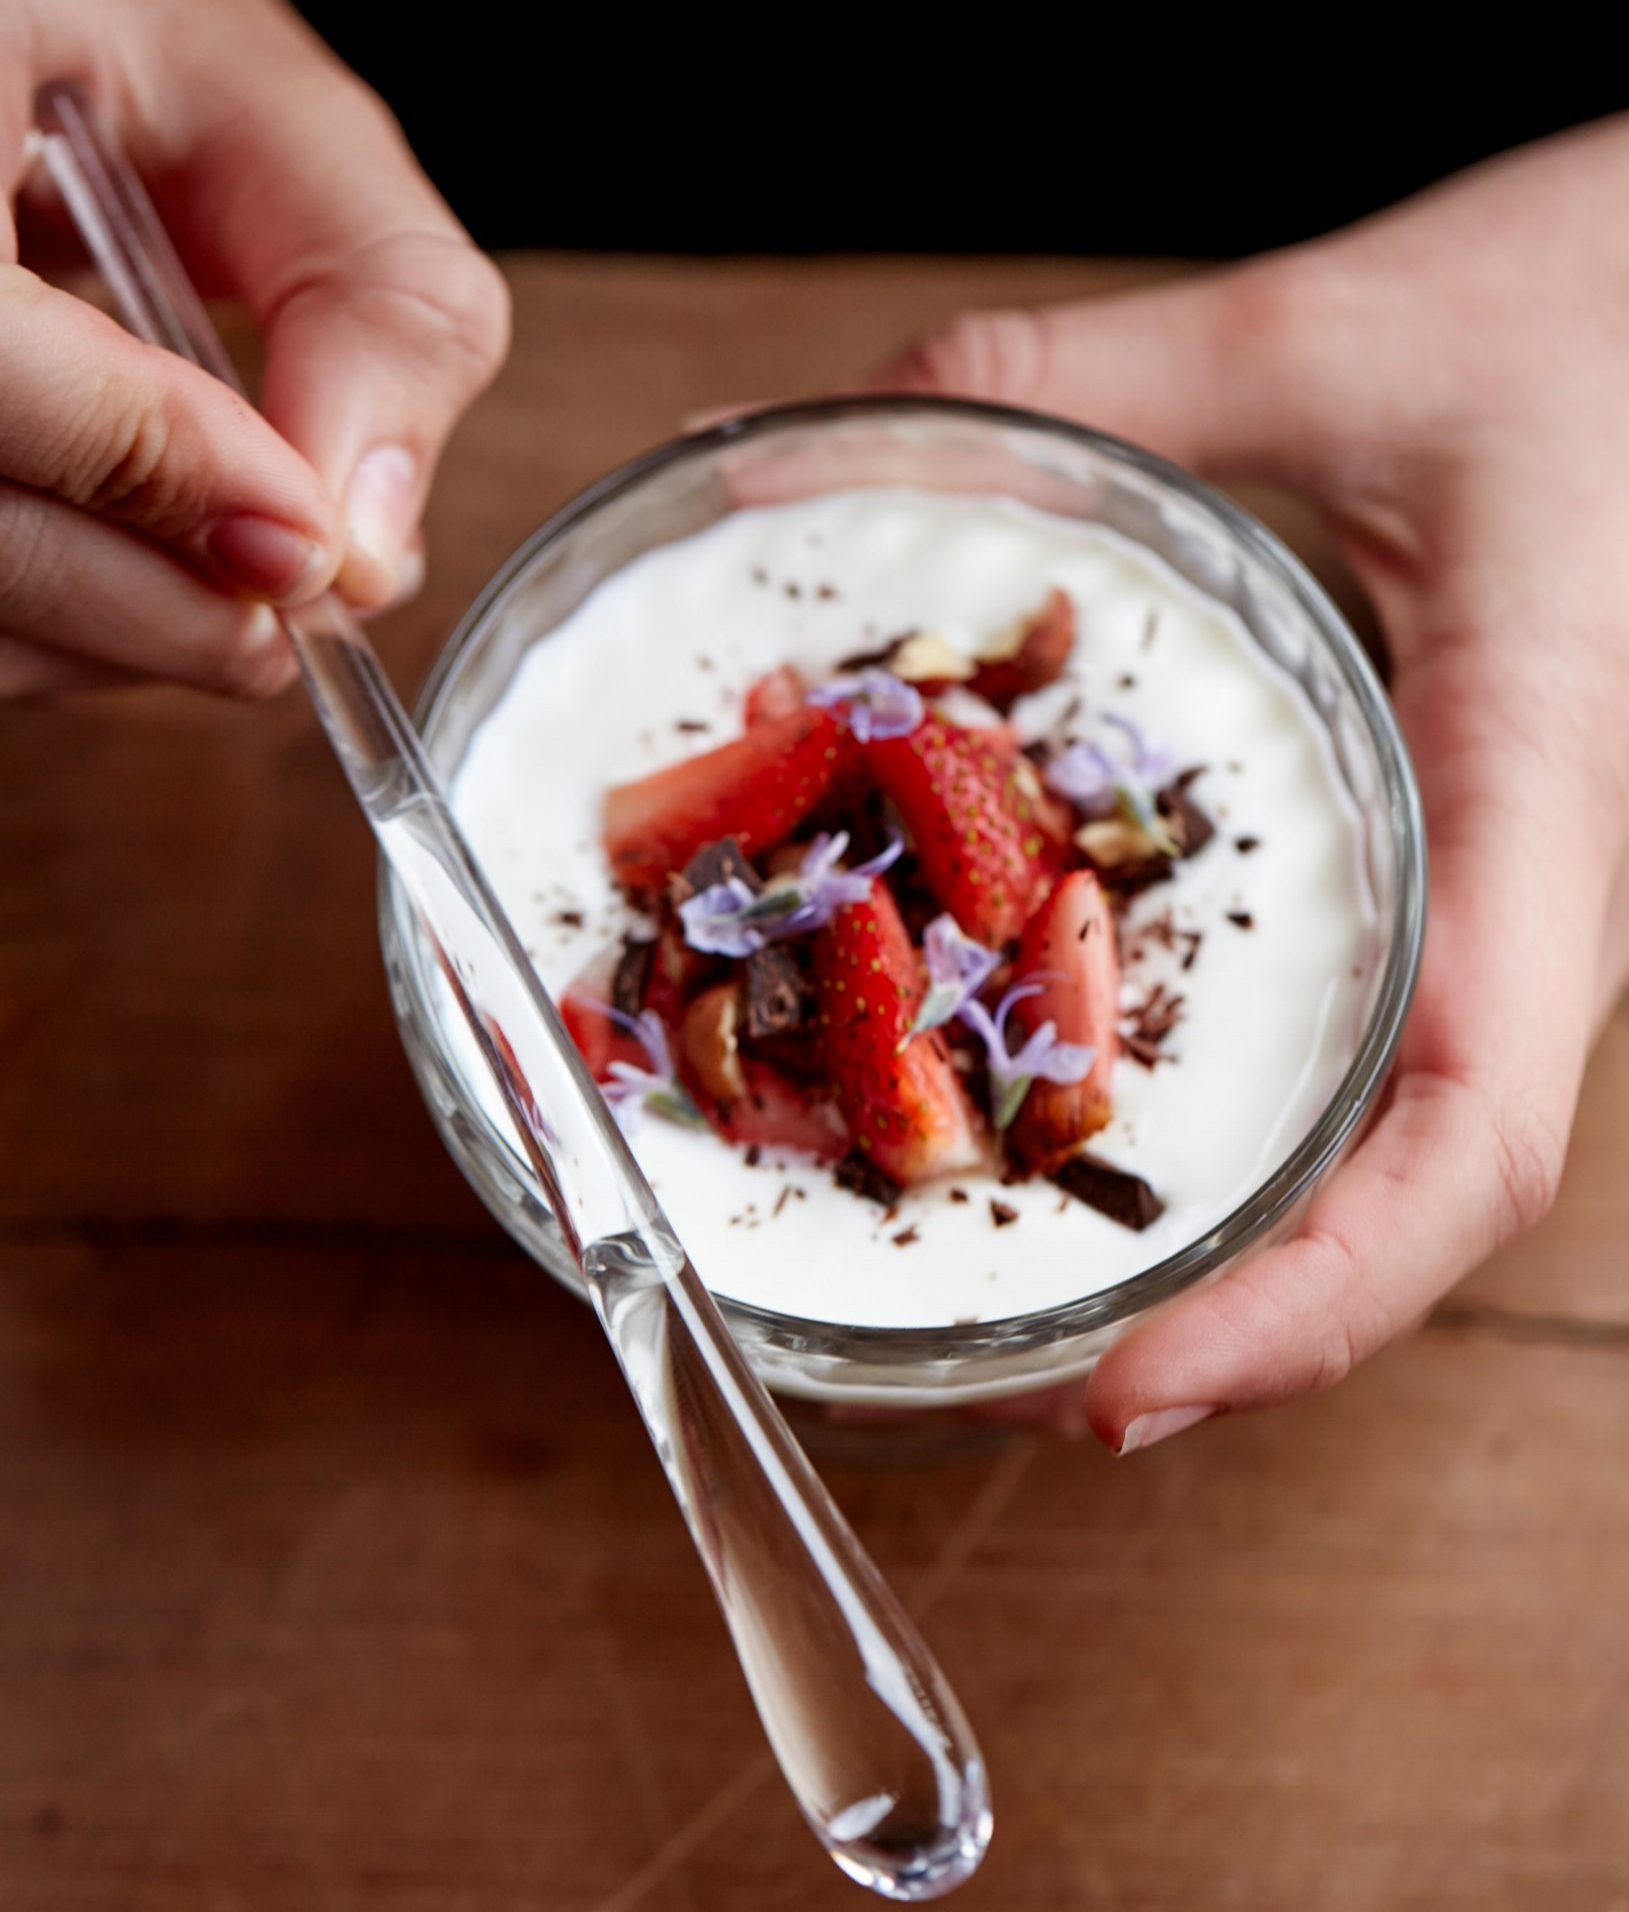 Finger-shaped Goûte spoon Could Make Food Taste Better - DEZEEN